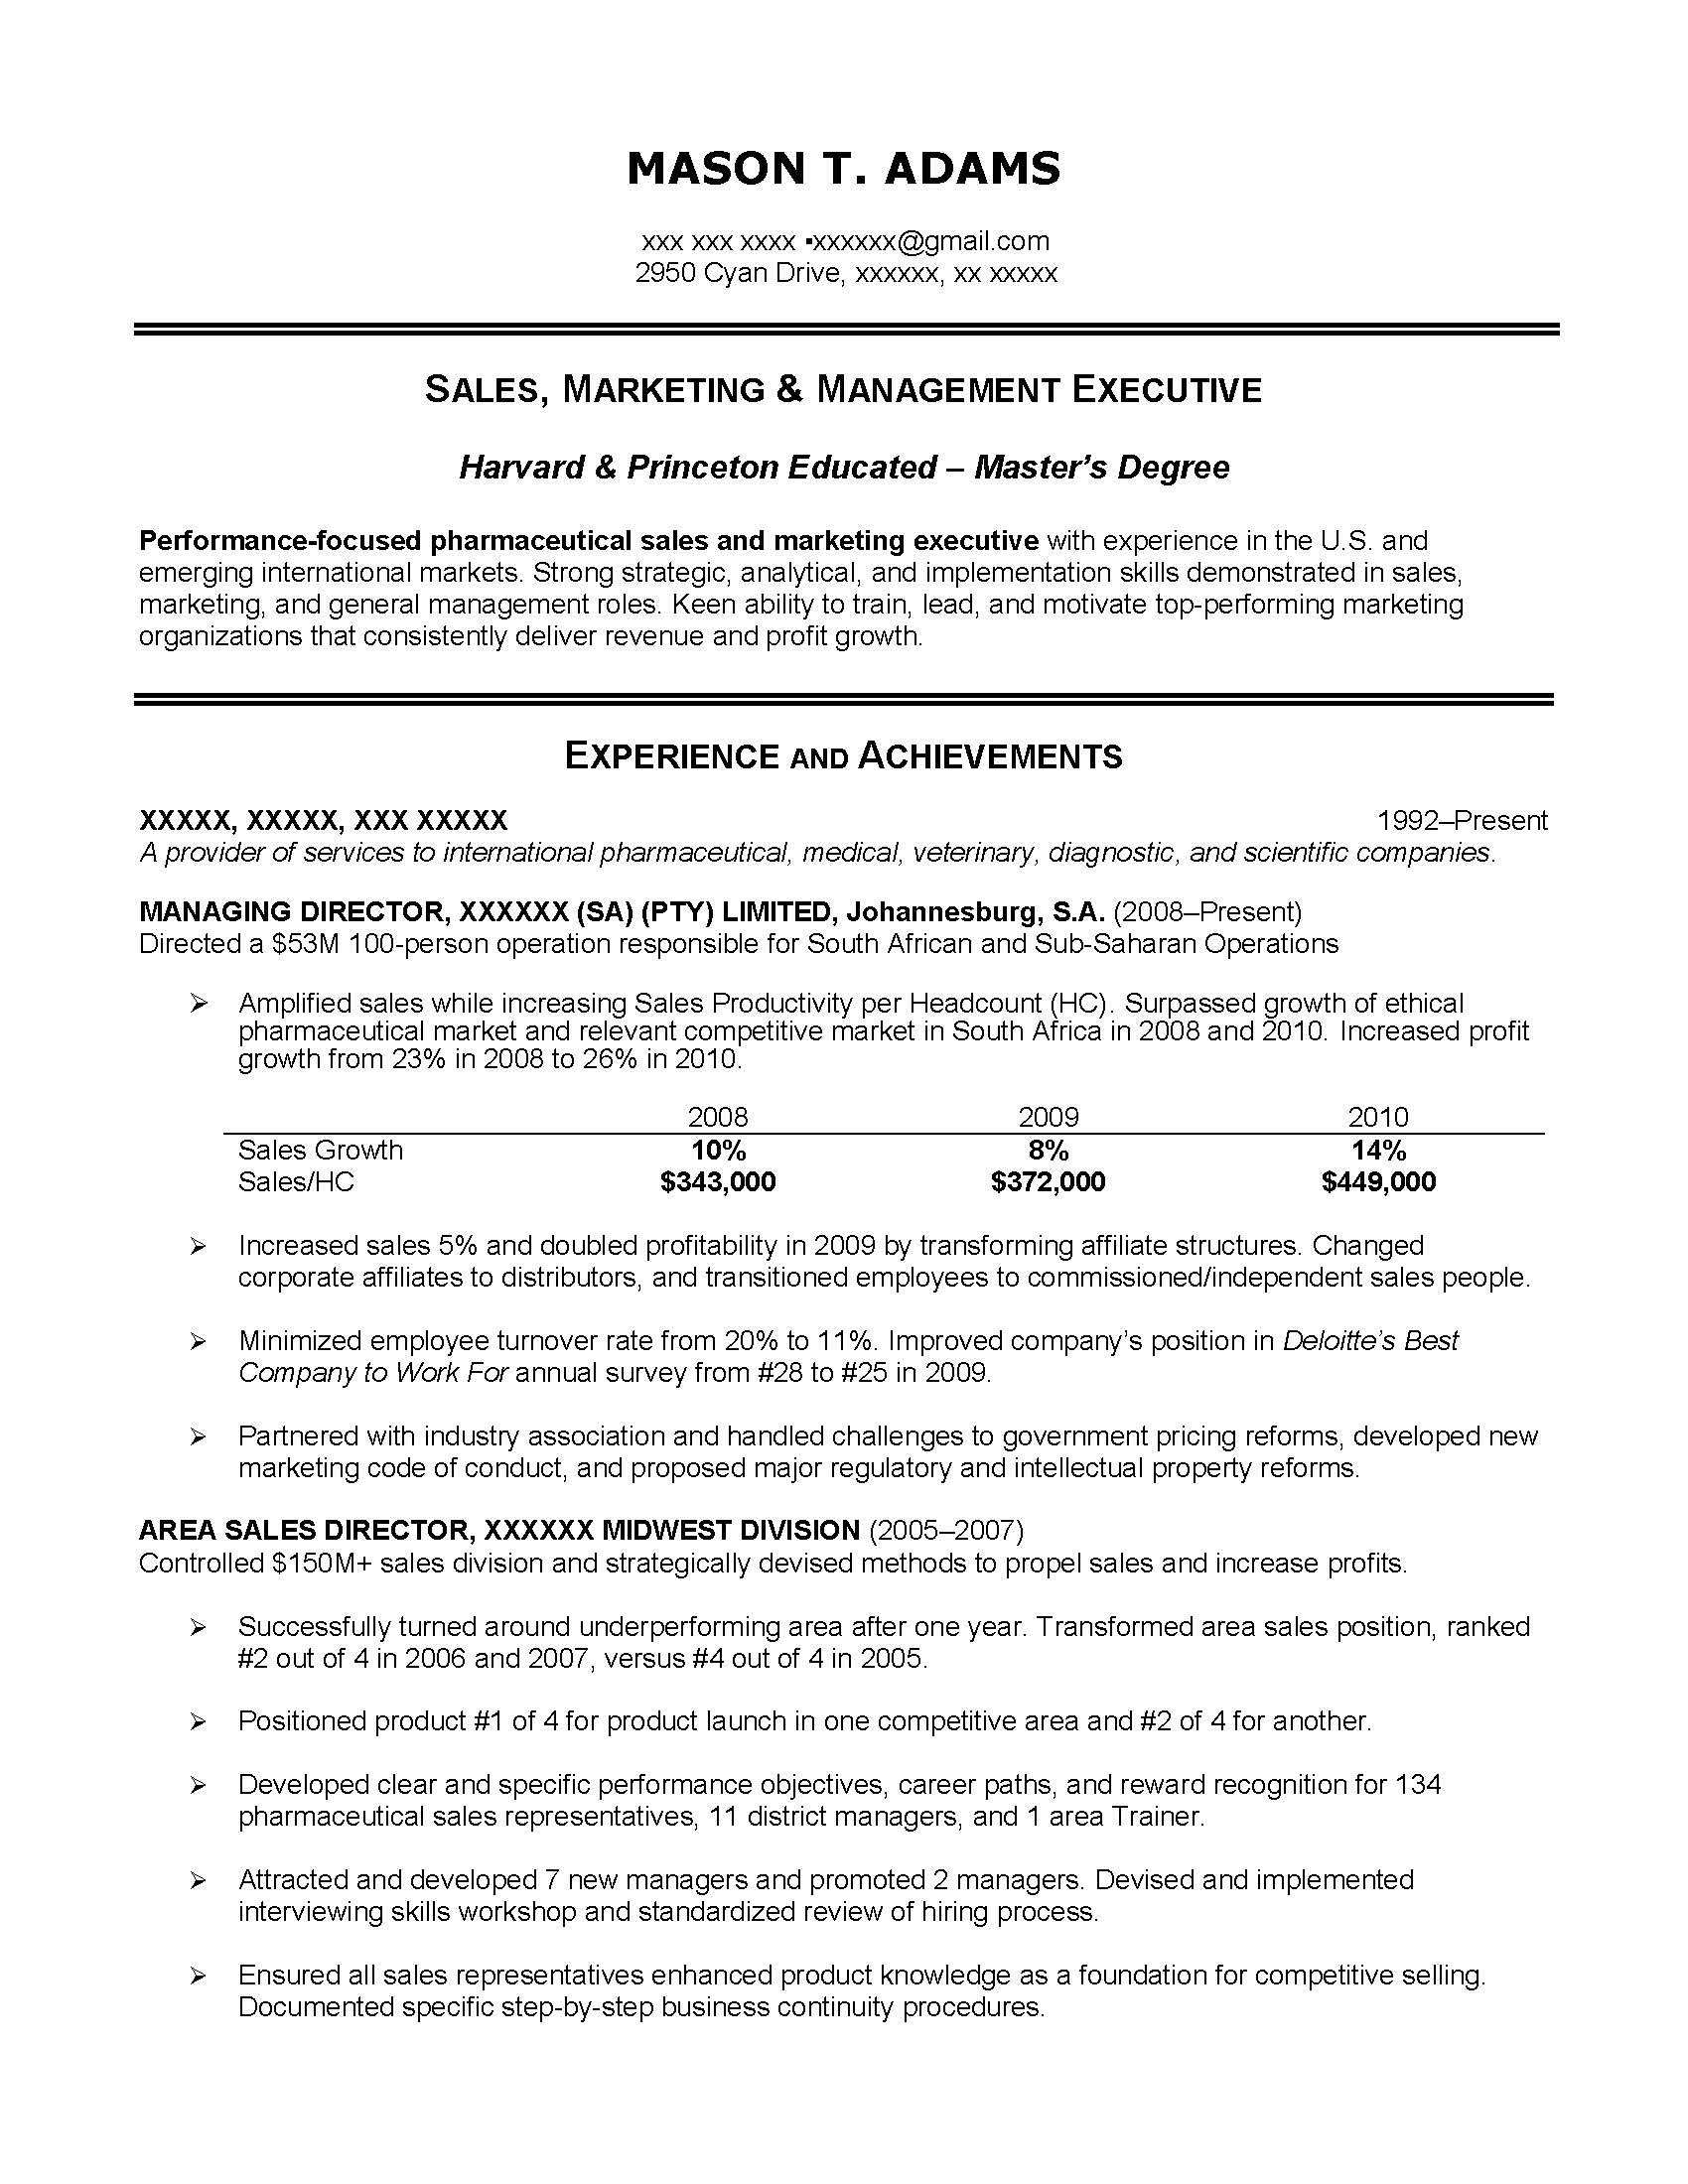 Executive Sales Resume Sample, Provided By Elite Resume Writing Services  Resume Objectives For Sales